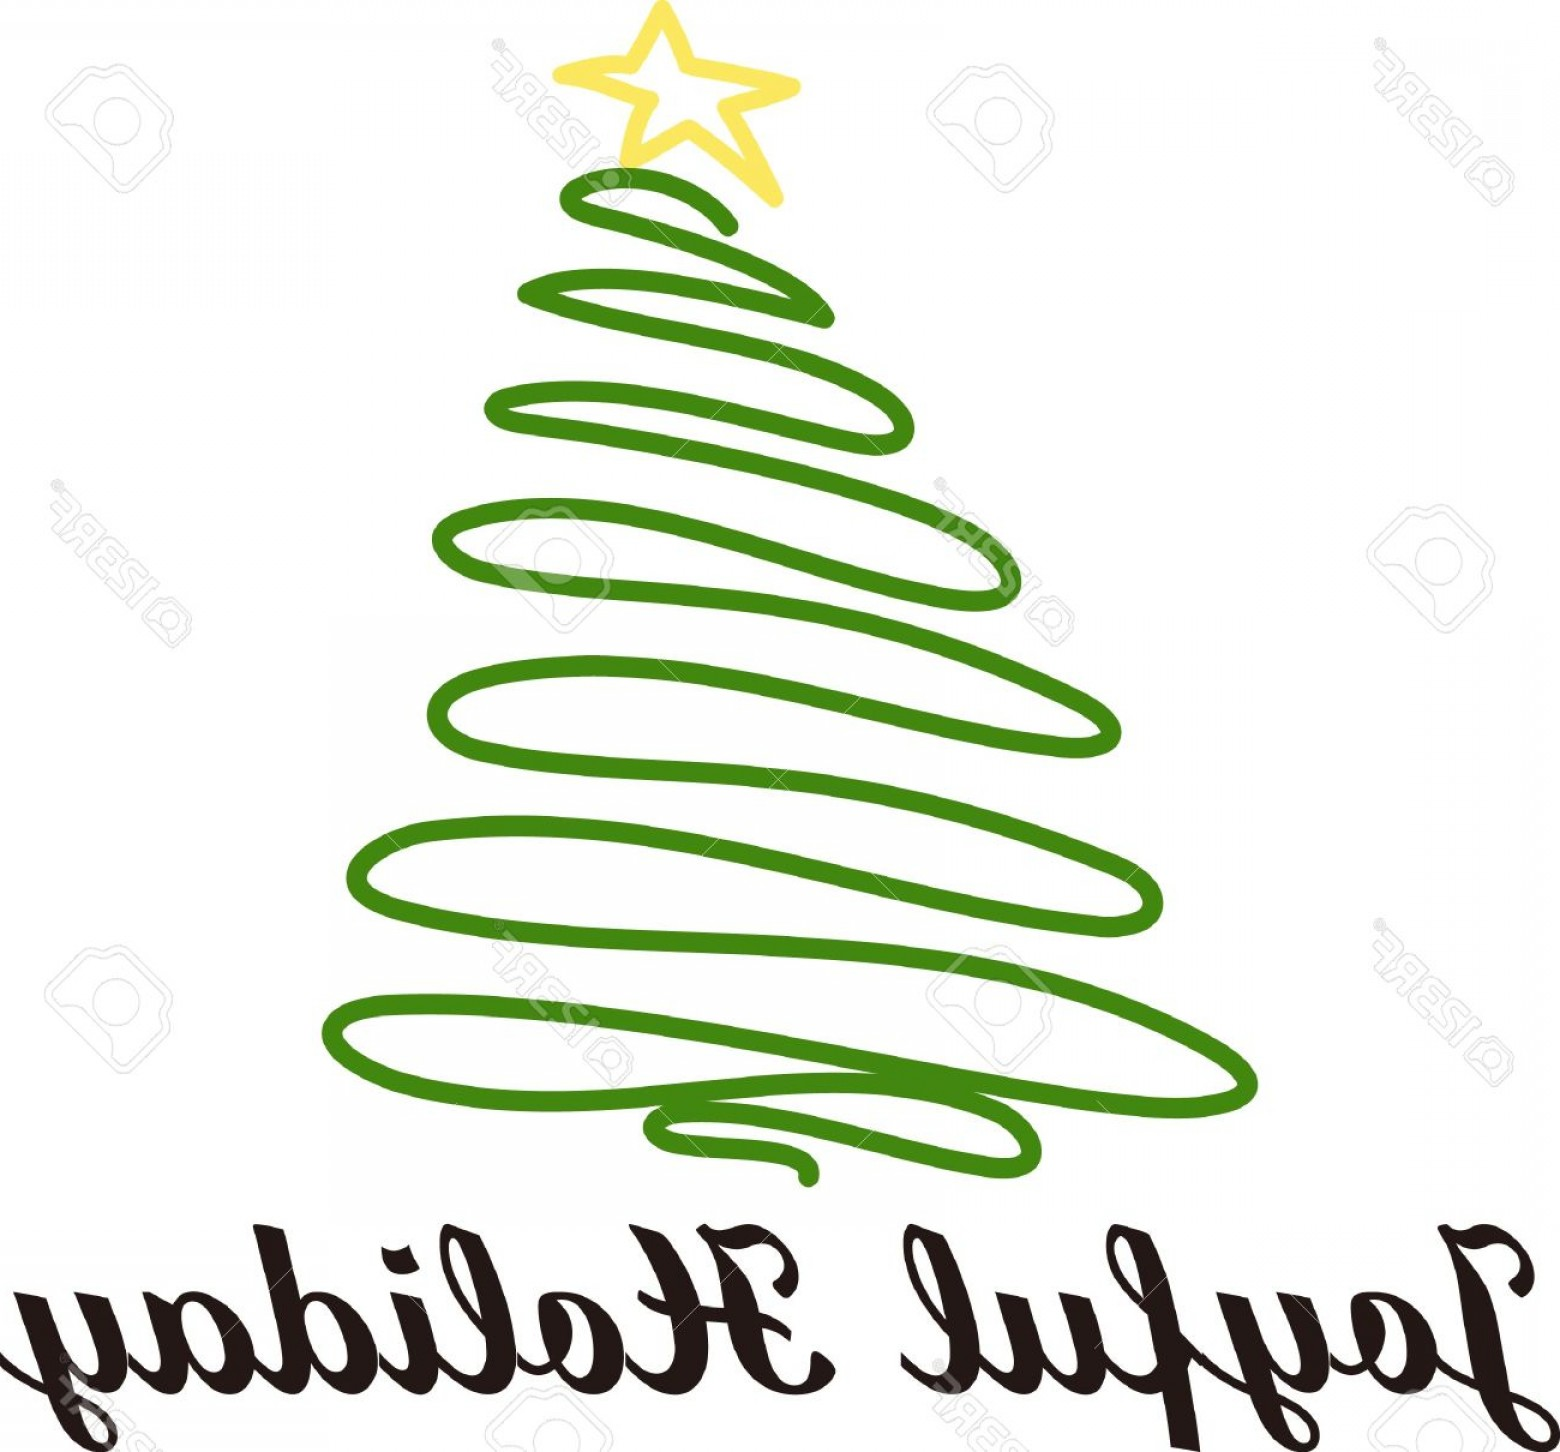 Swirly Christmas Tree Vector: Photostock Vector Swirly Lines Form A Simple And Lovely Christmas Tree Made Absolutely Perfect With A Star On Top